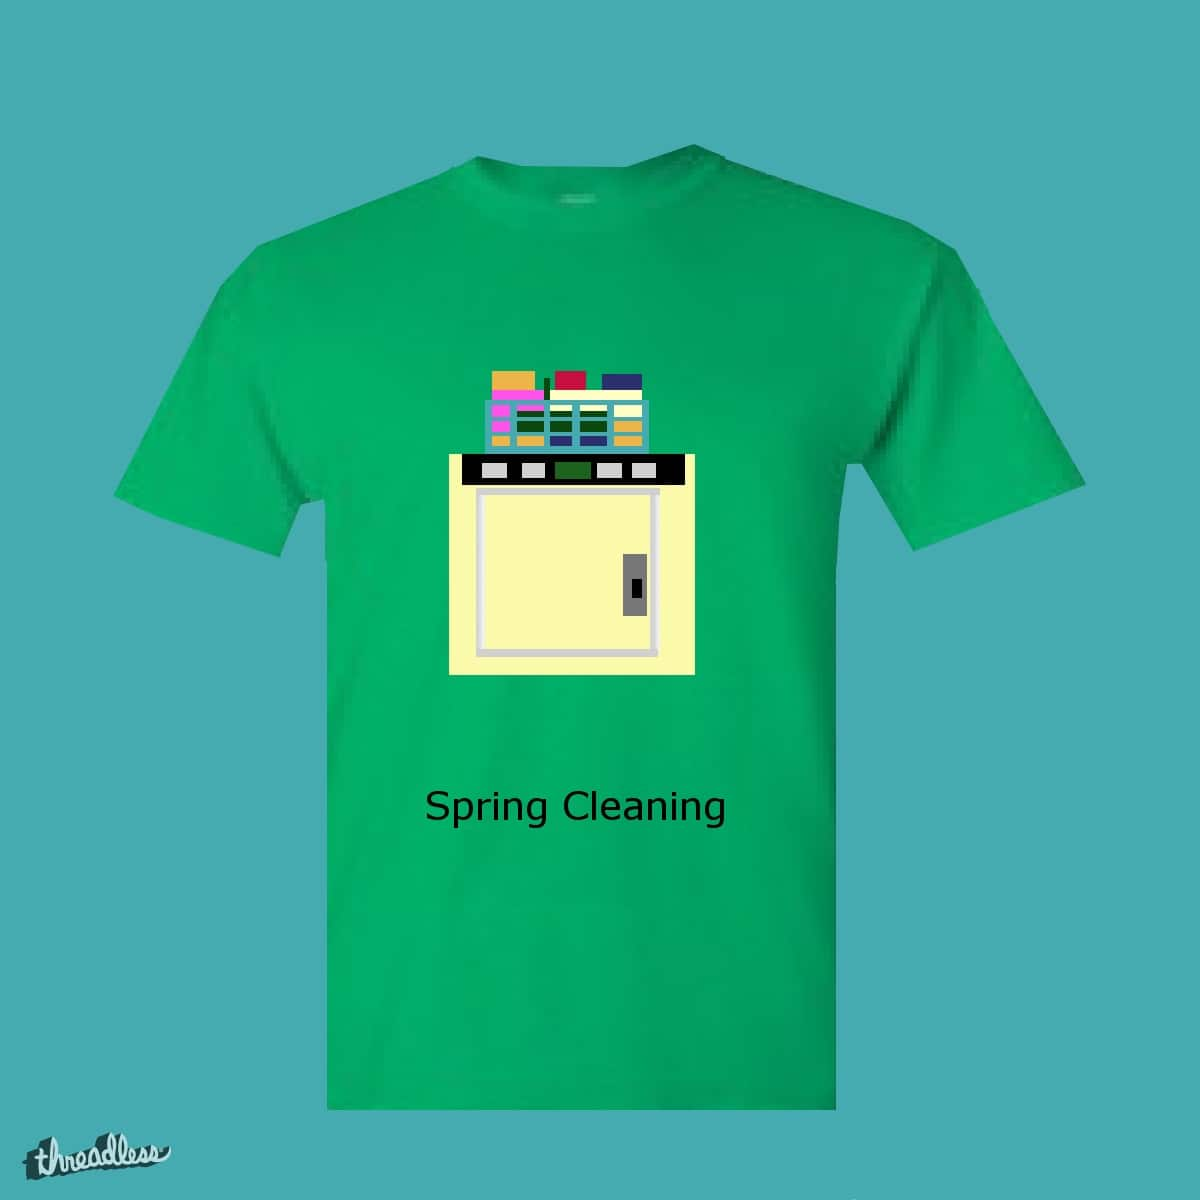 Spring Cleaning by jojojob75 on Threadless